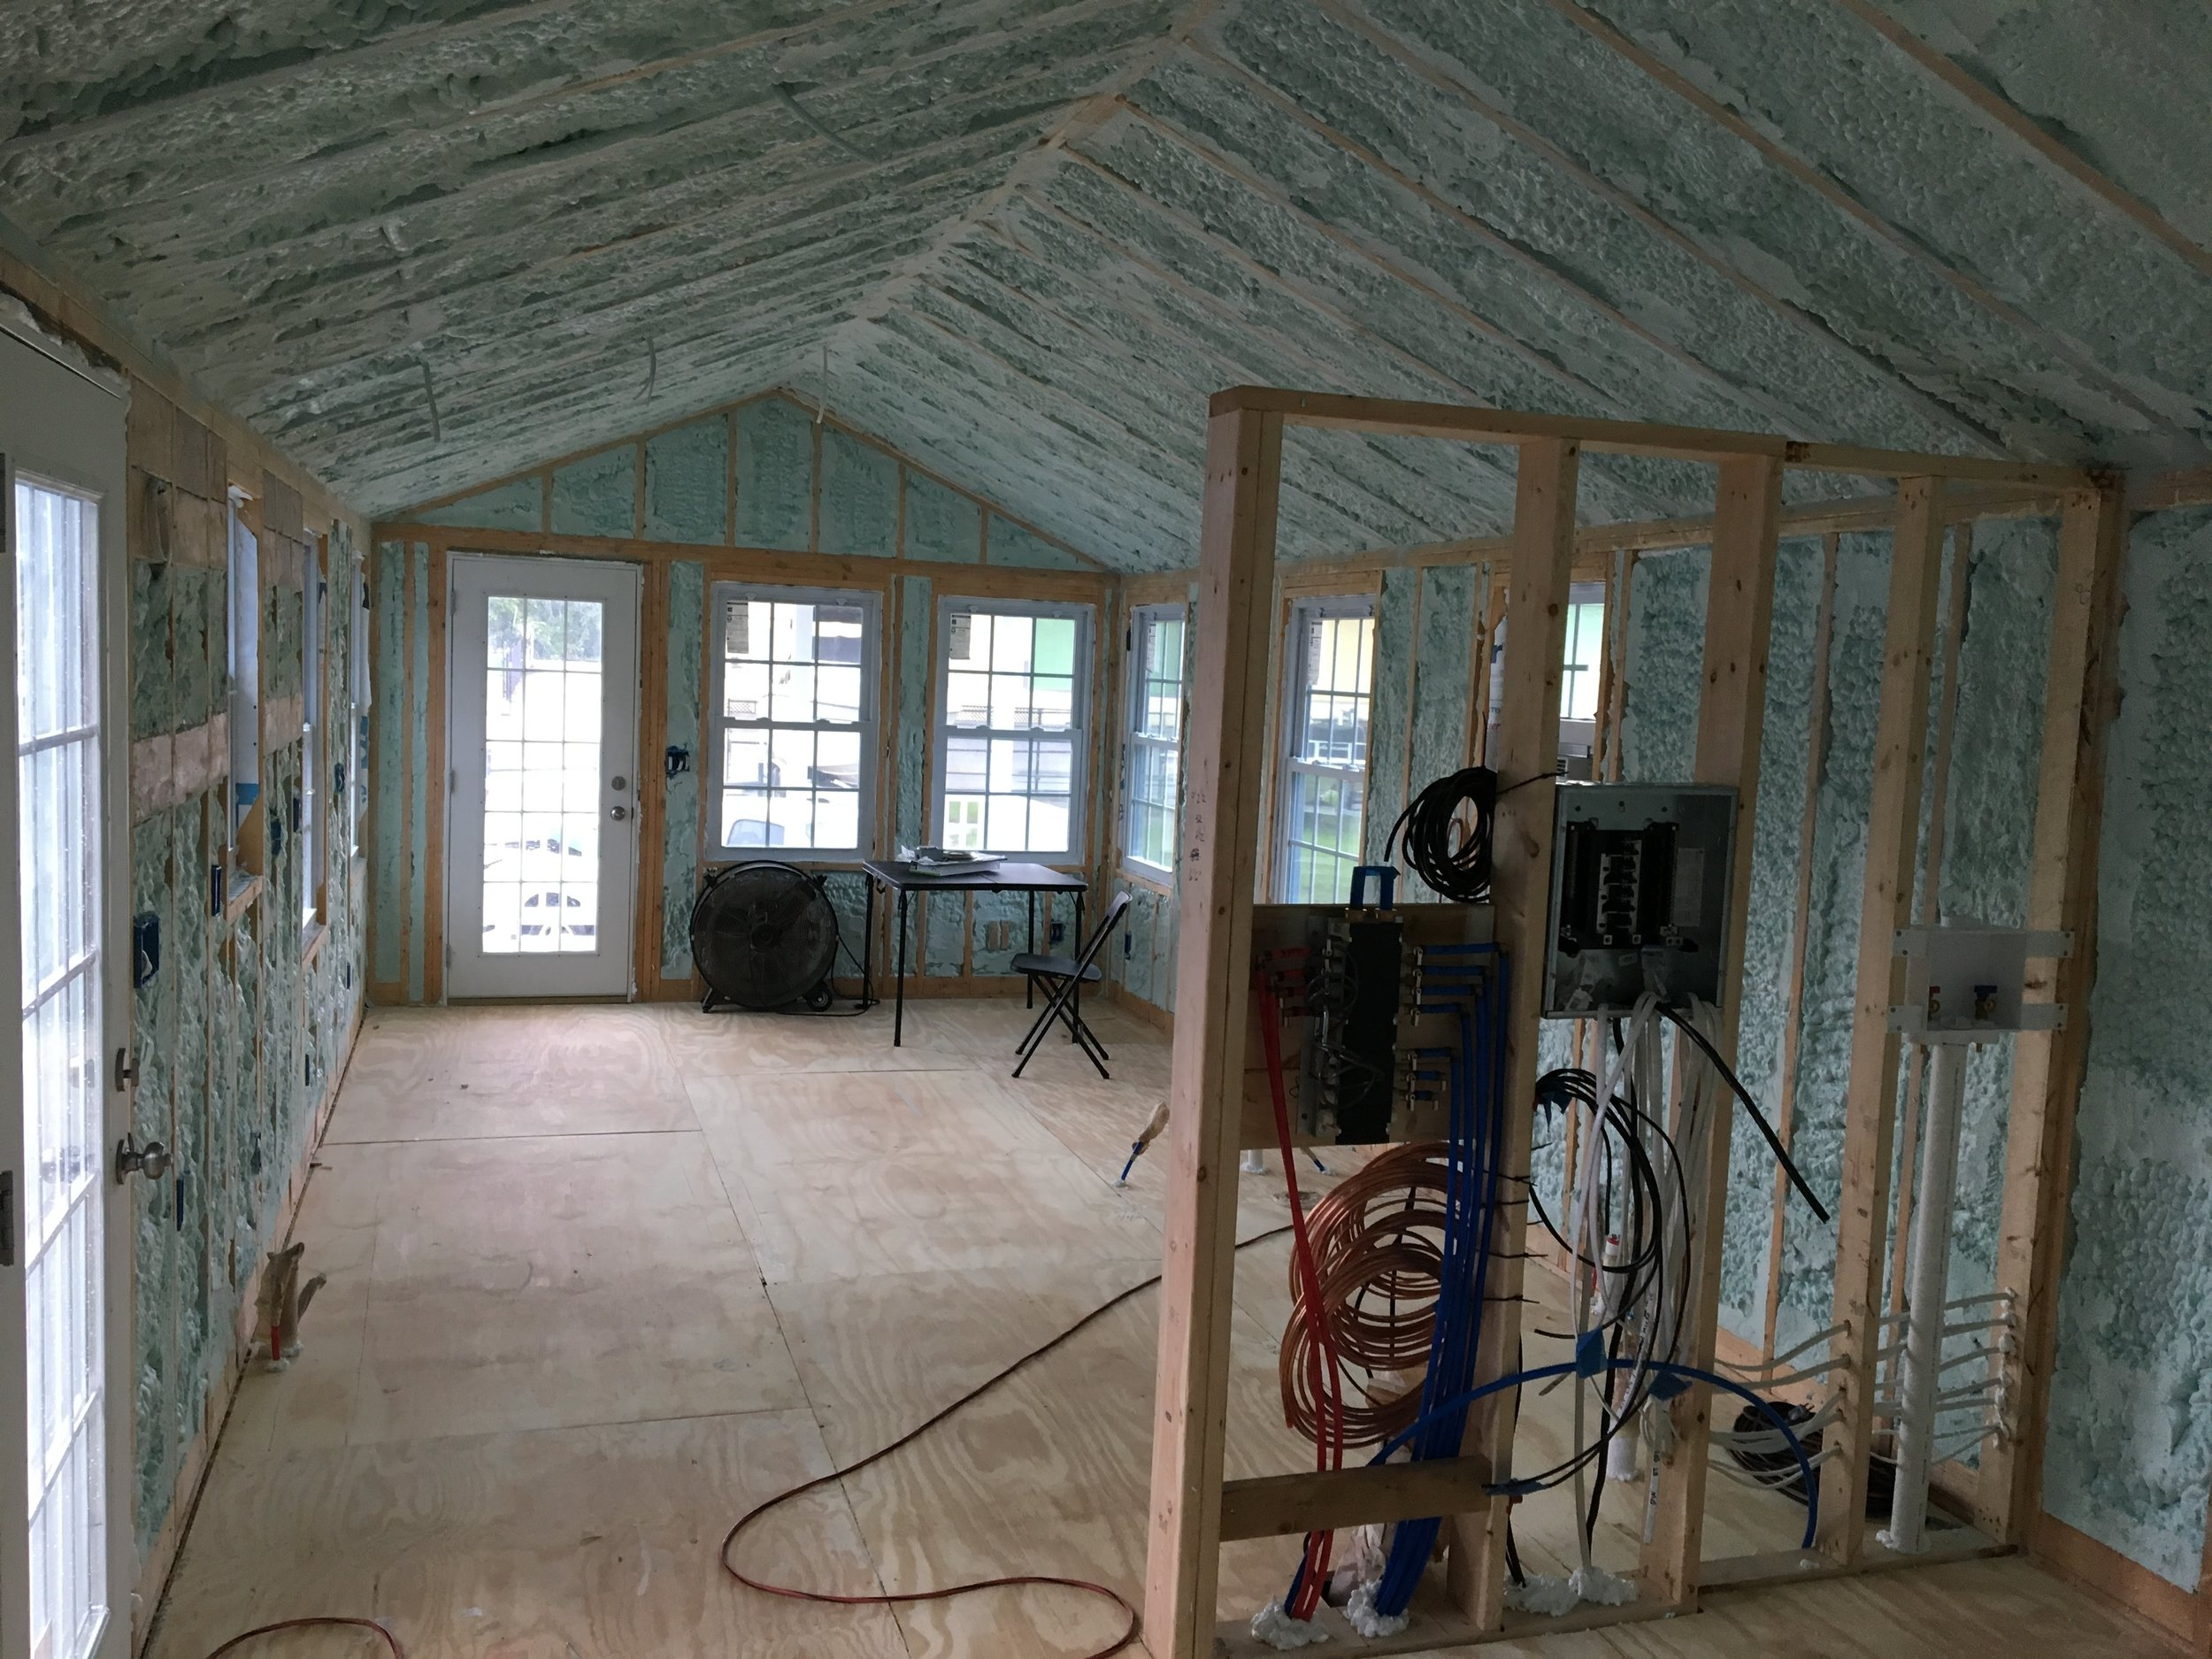 A shell, completely closed-cell spray foam insulated, awaiting the finish work that sets us apart from the competition.